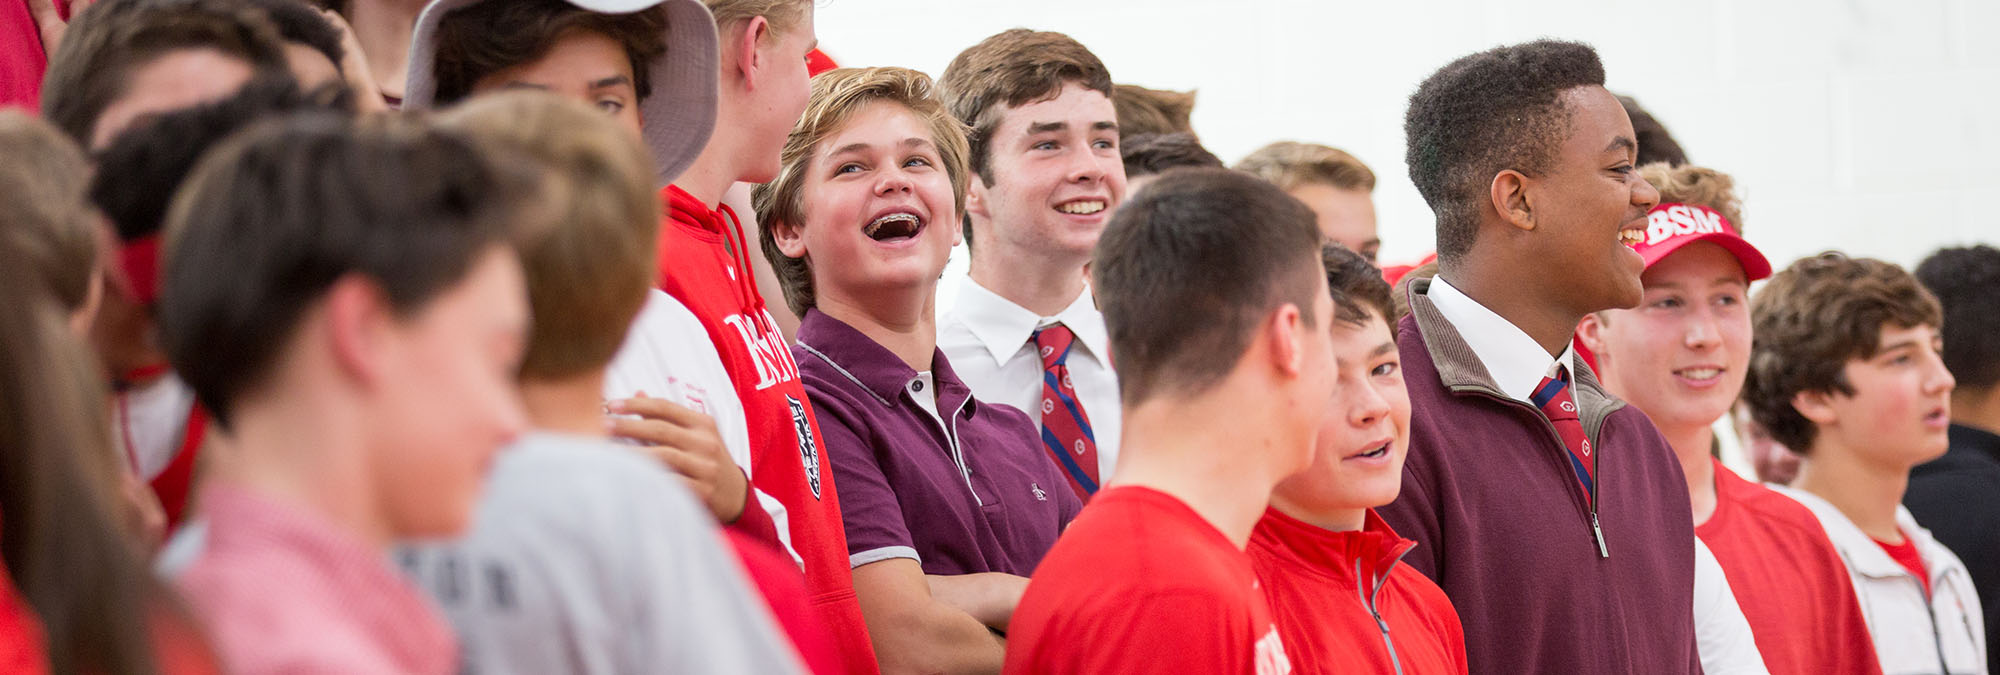 Students laugh at pep fest